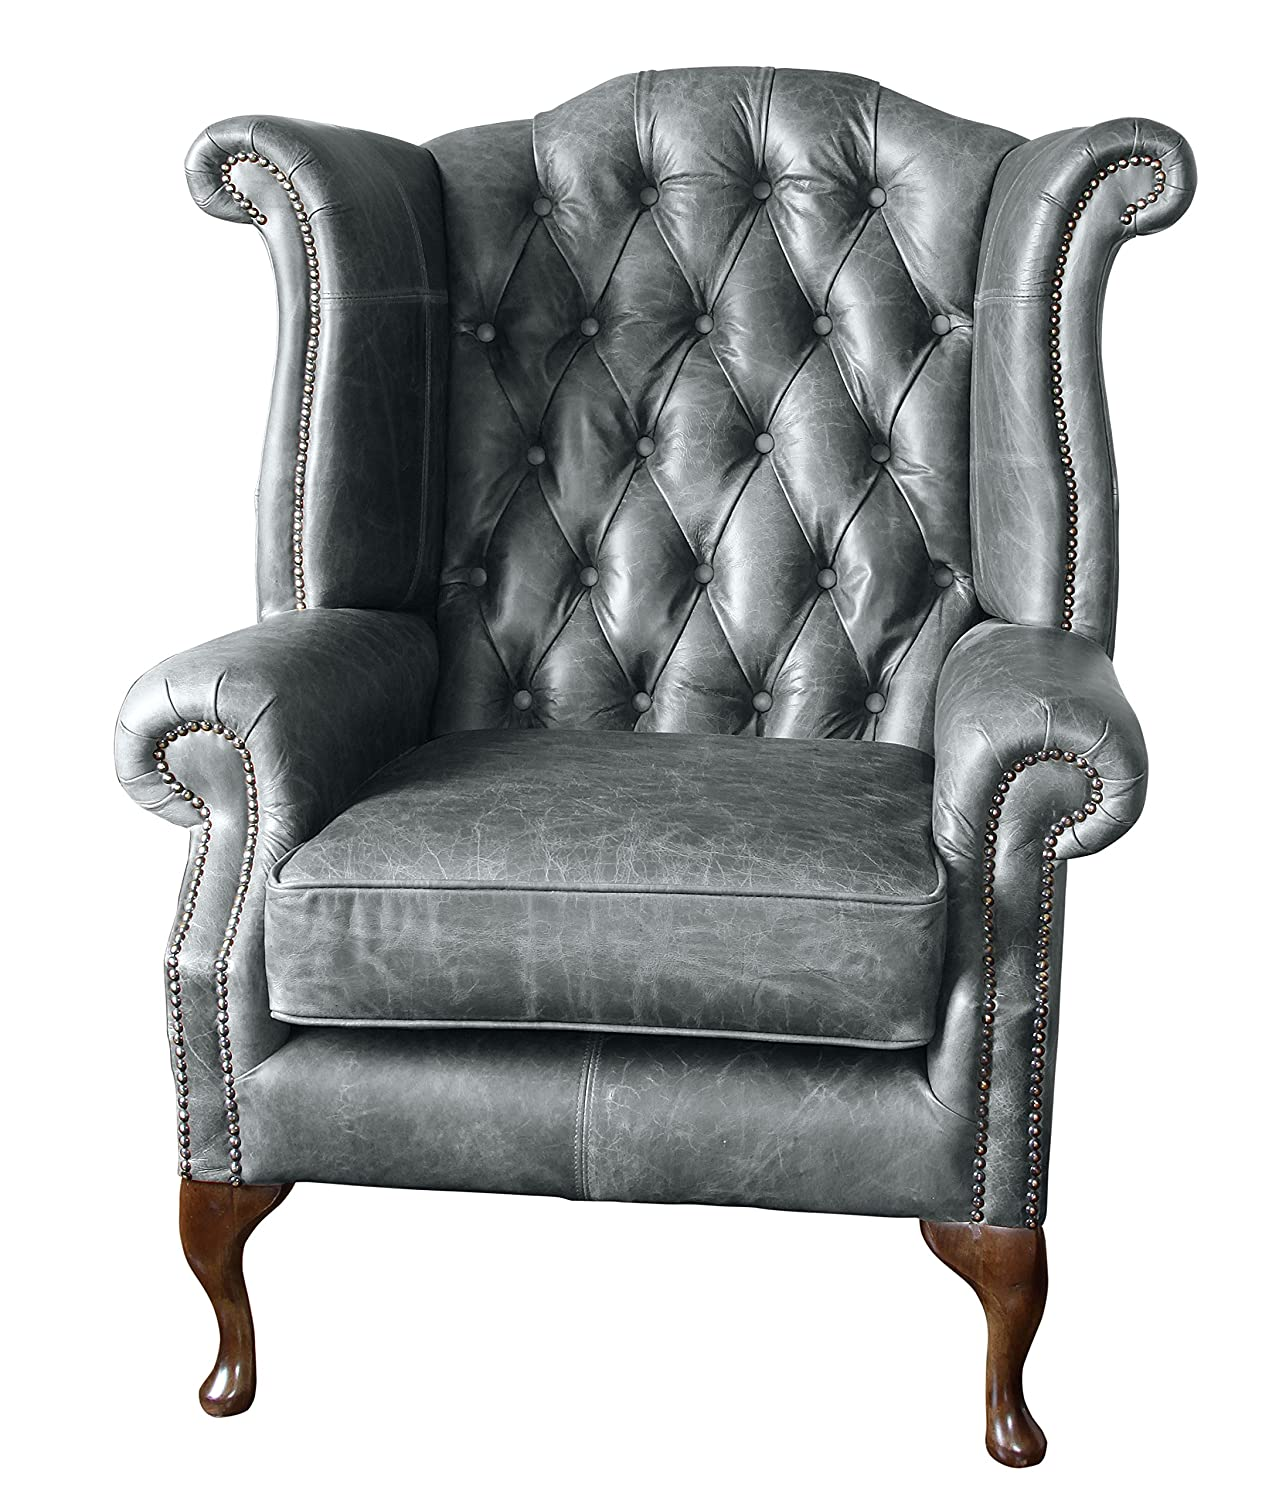 Remarkable Sofa Manufacturing Handmade Chesterfield Queen Anne High Back Wing Chair In Vintage Grey Leather Download Free Architecture Designs Rallybritishbridgeorg